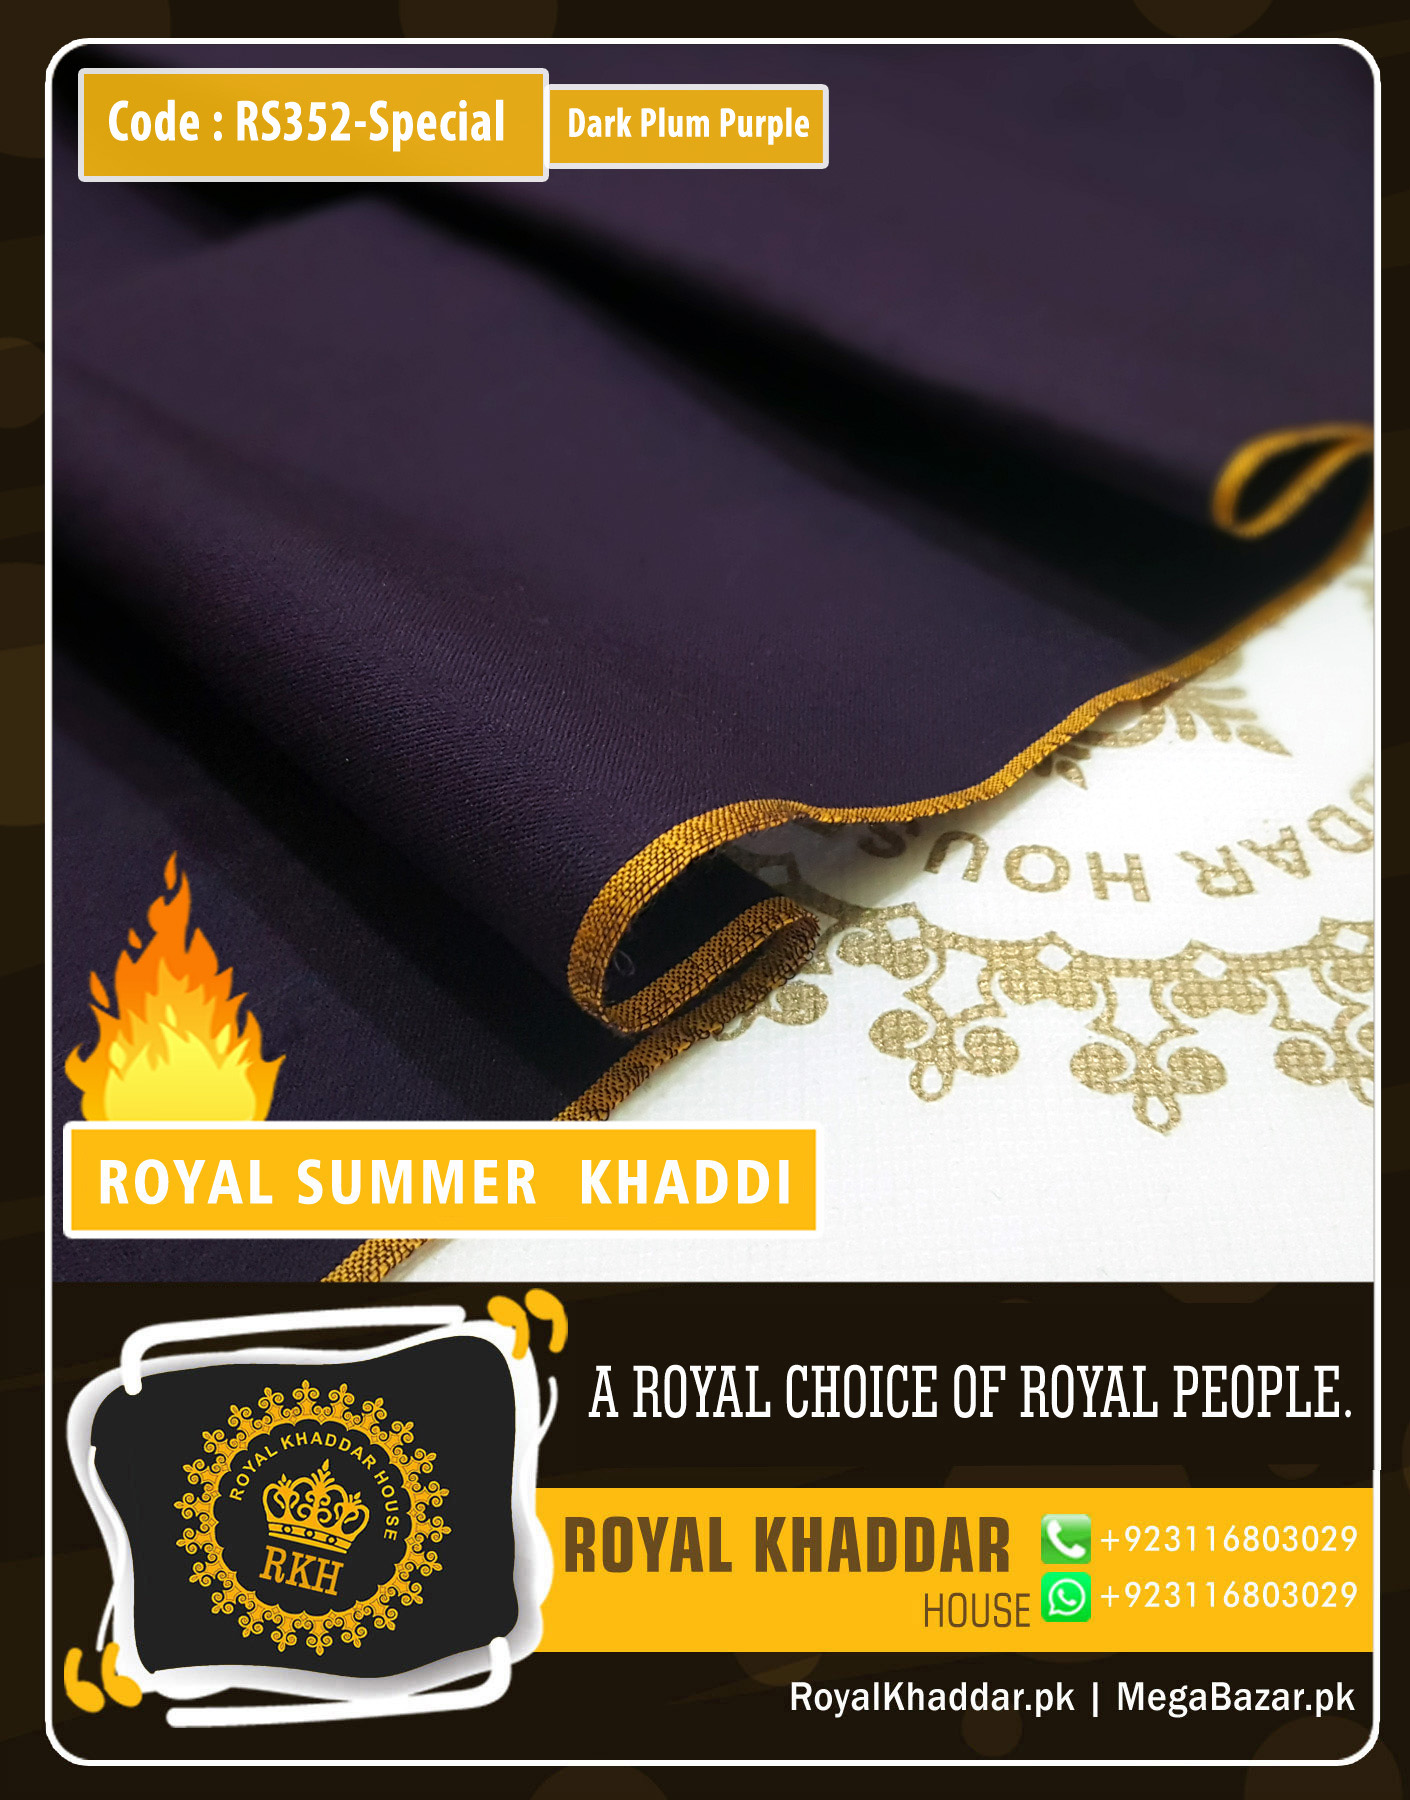 Dark Plum Purple Special Royal Summer Khaddar RS352-Special